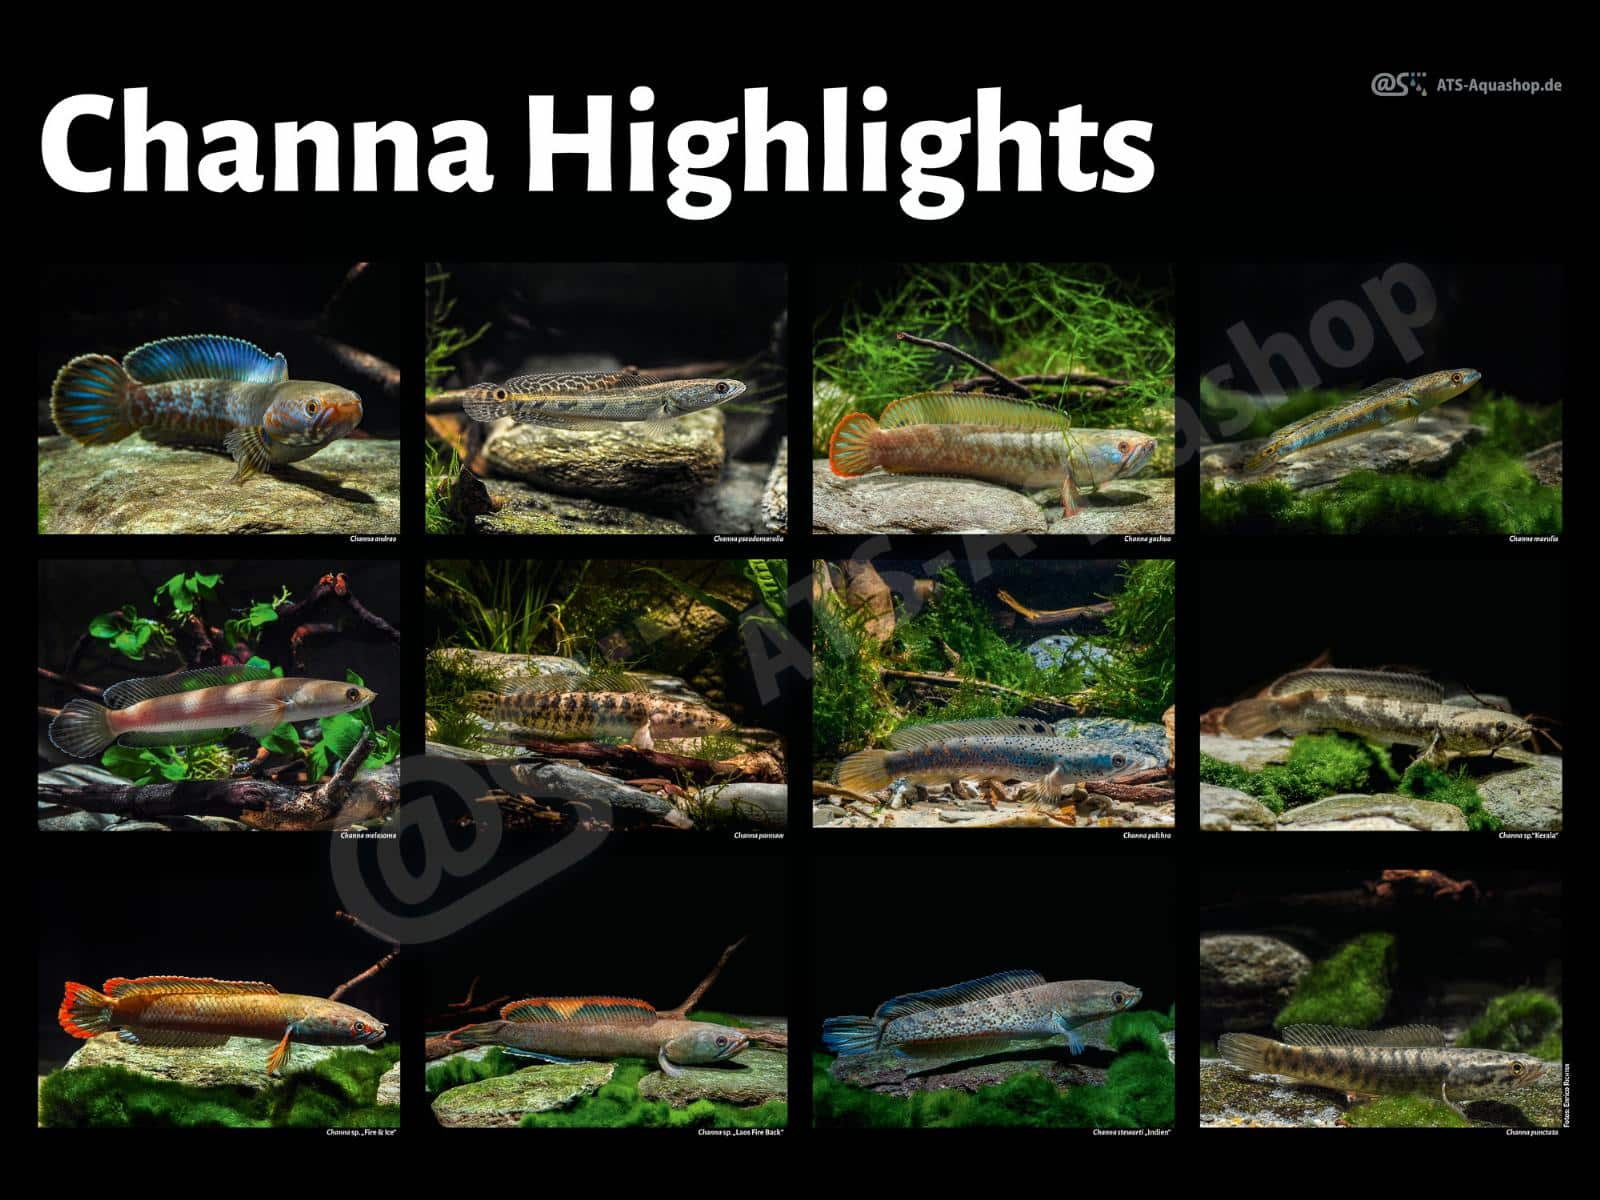 channa highlights 2